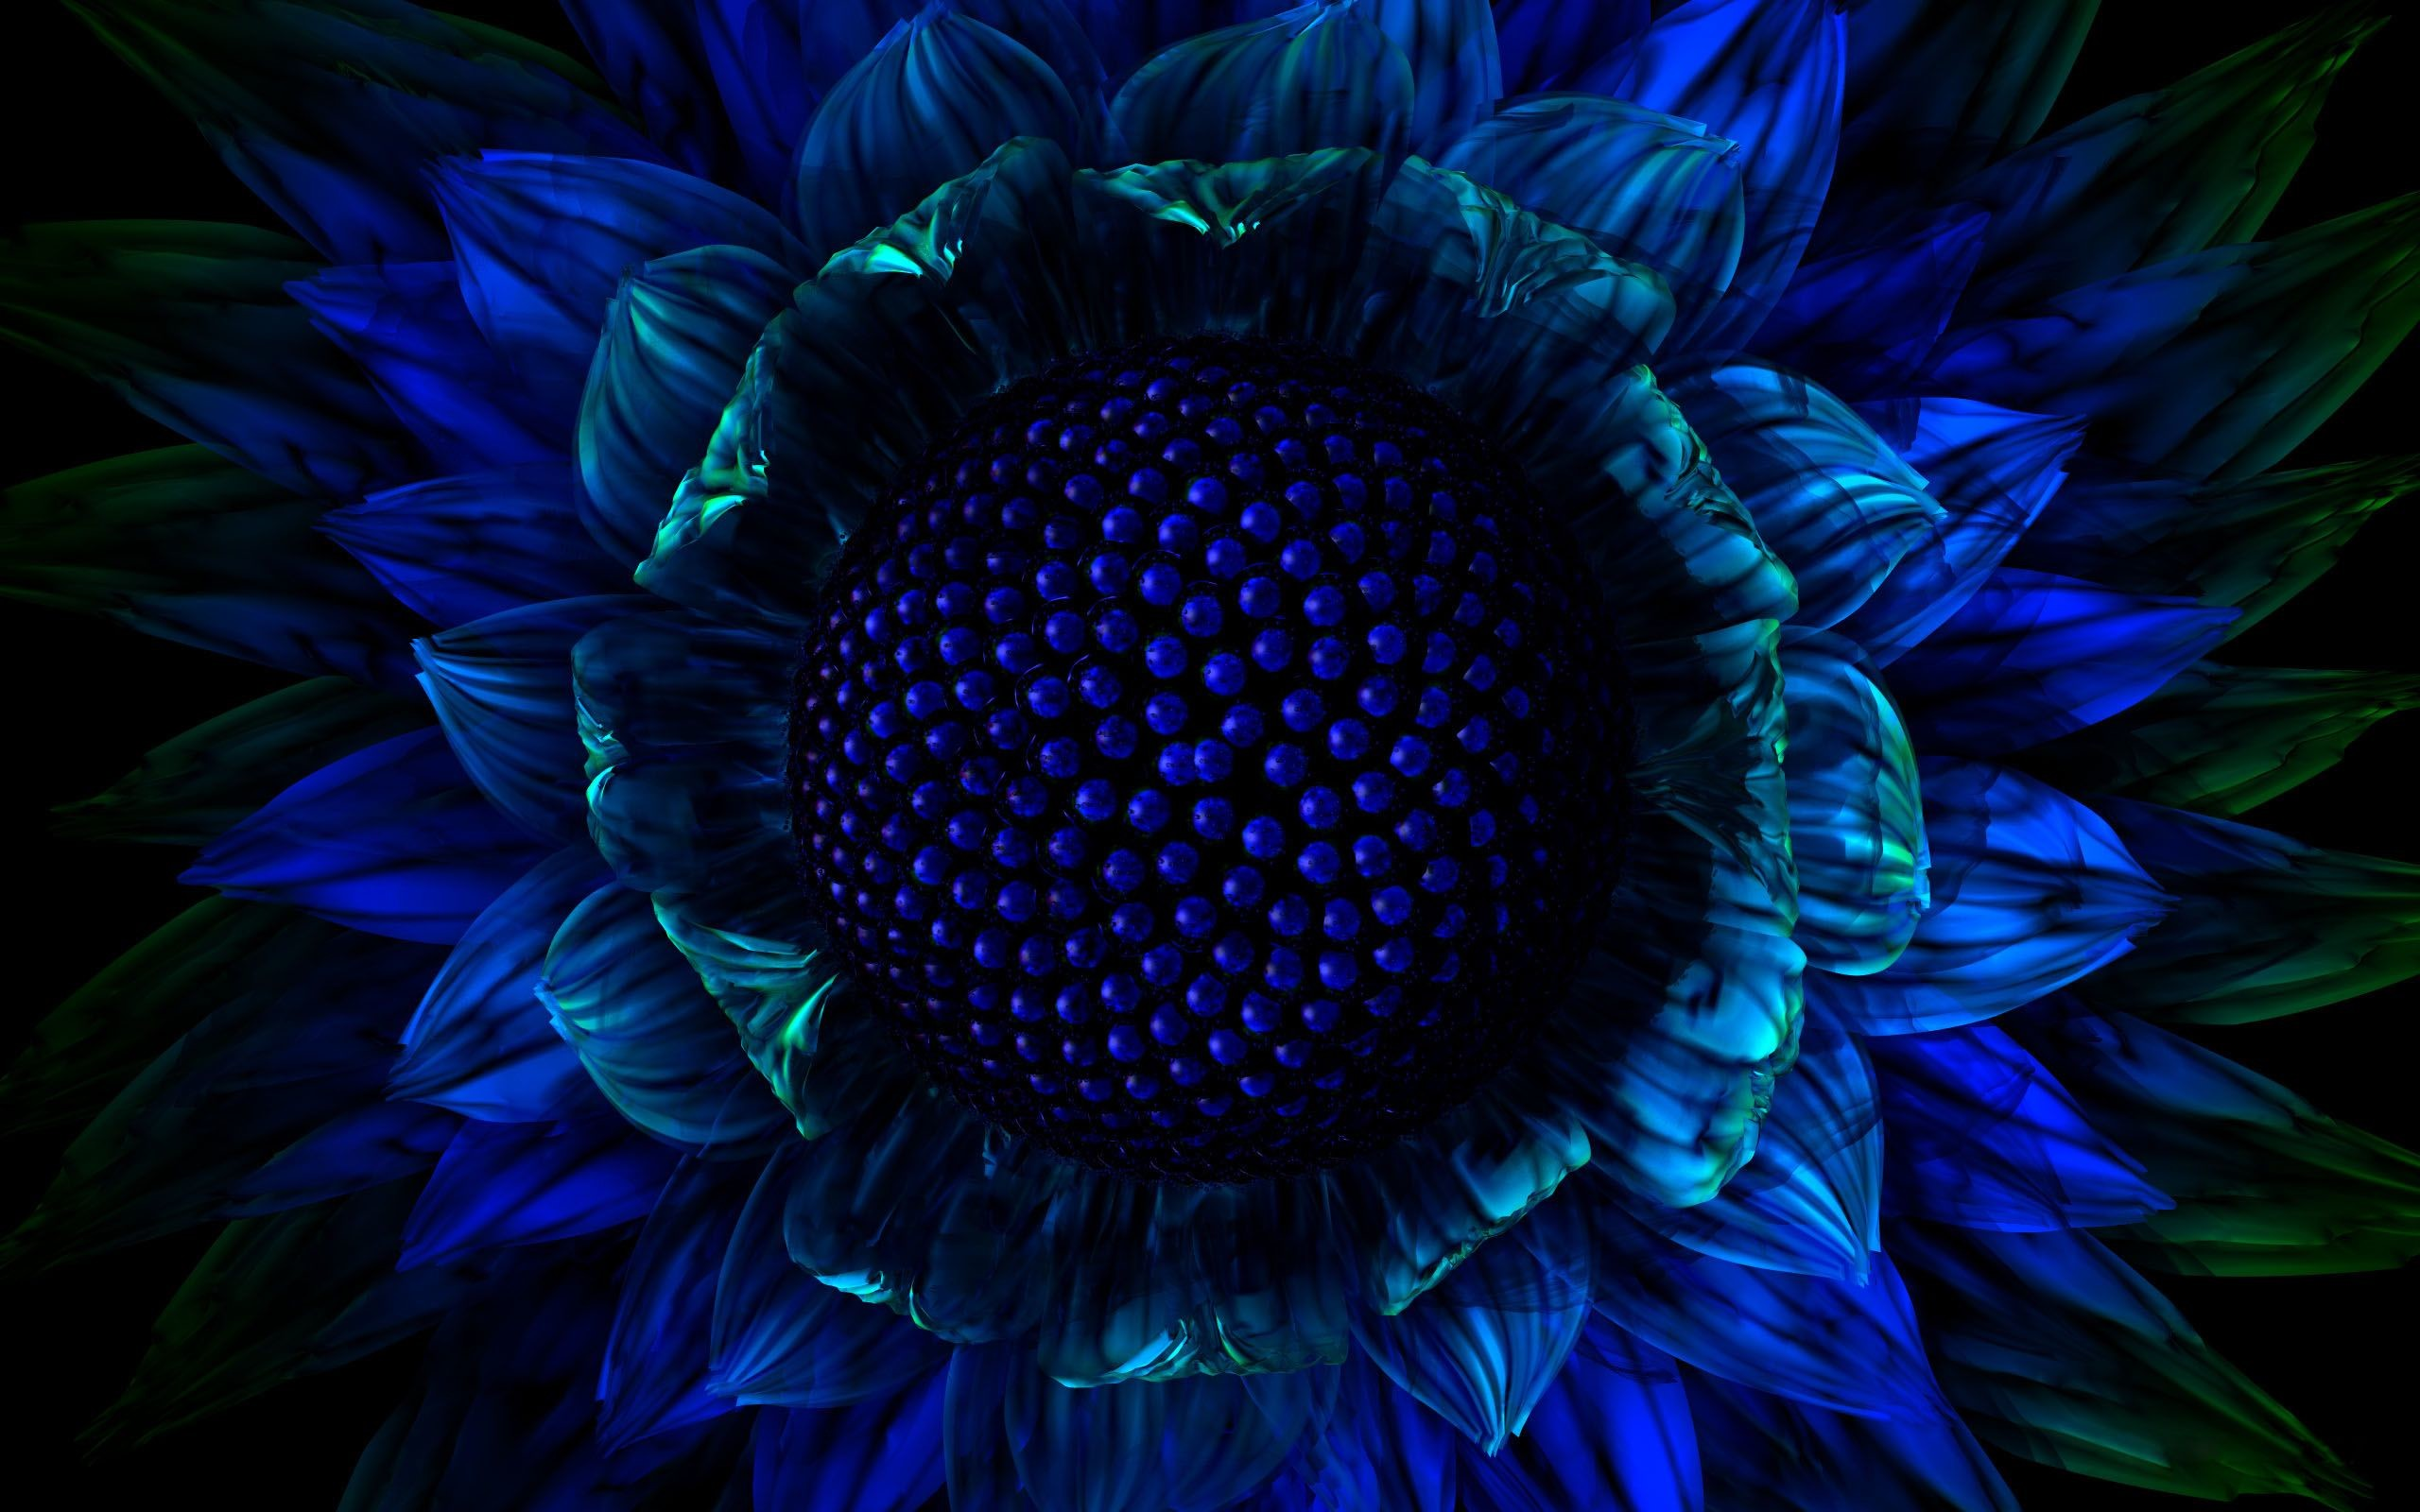 Res: 2560x1600, Exotic Flower Wallpapers - ImgHD : Browse and Download Free Images .